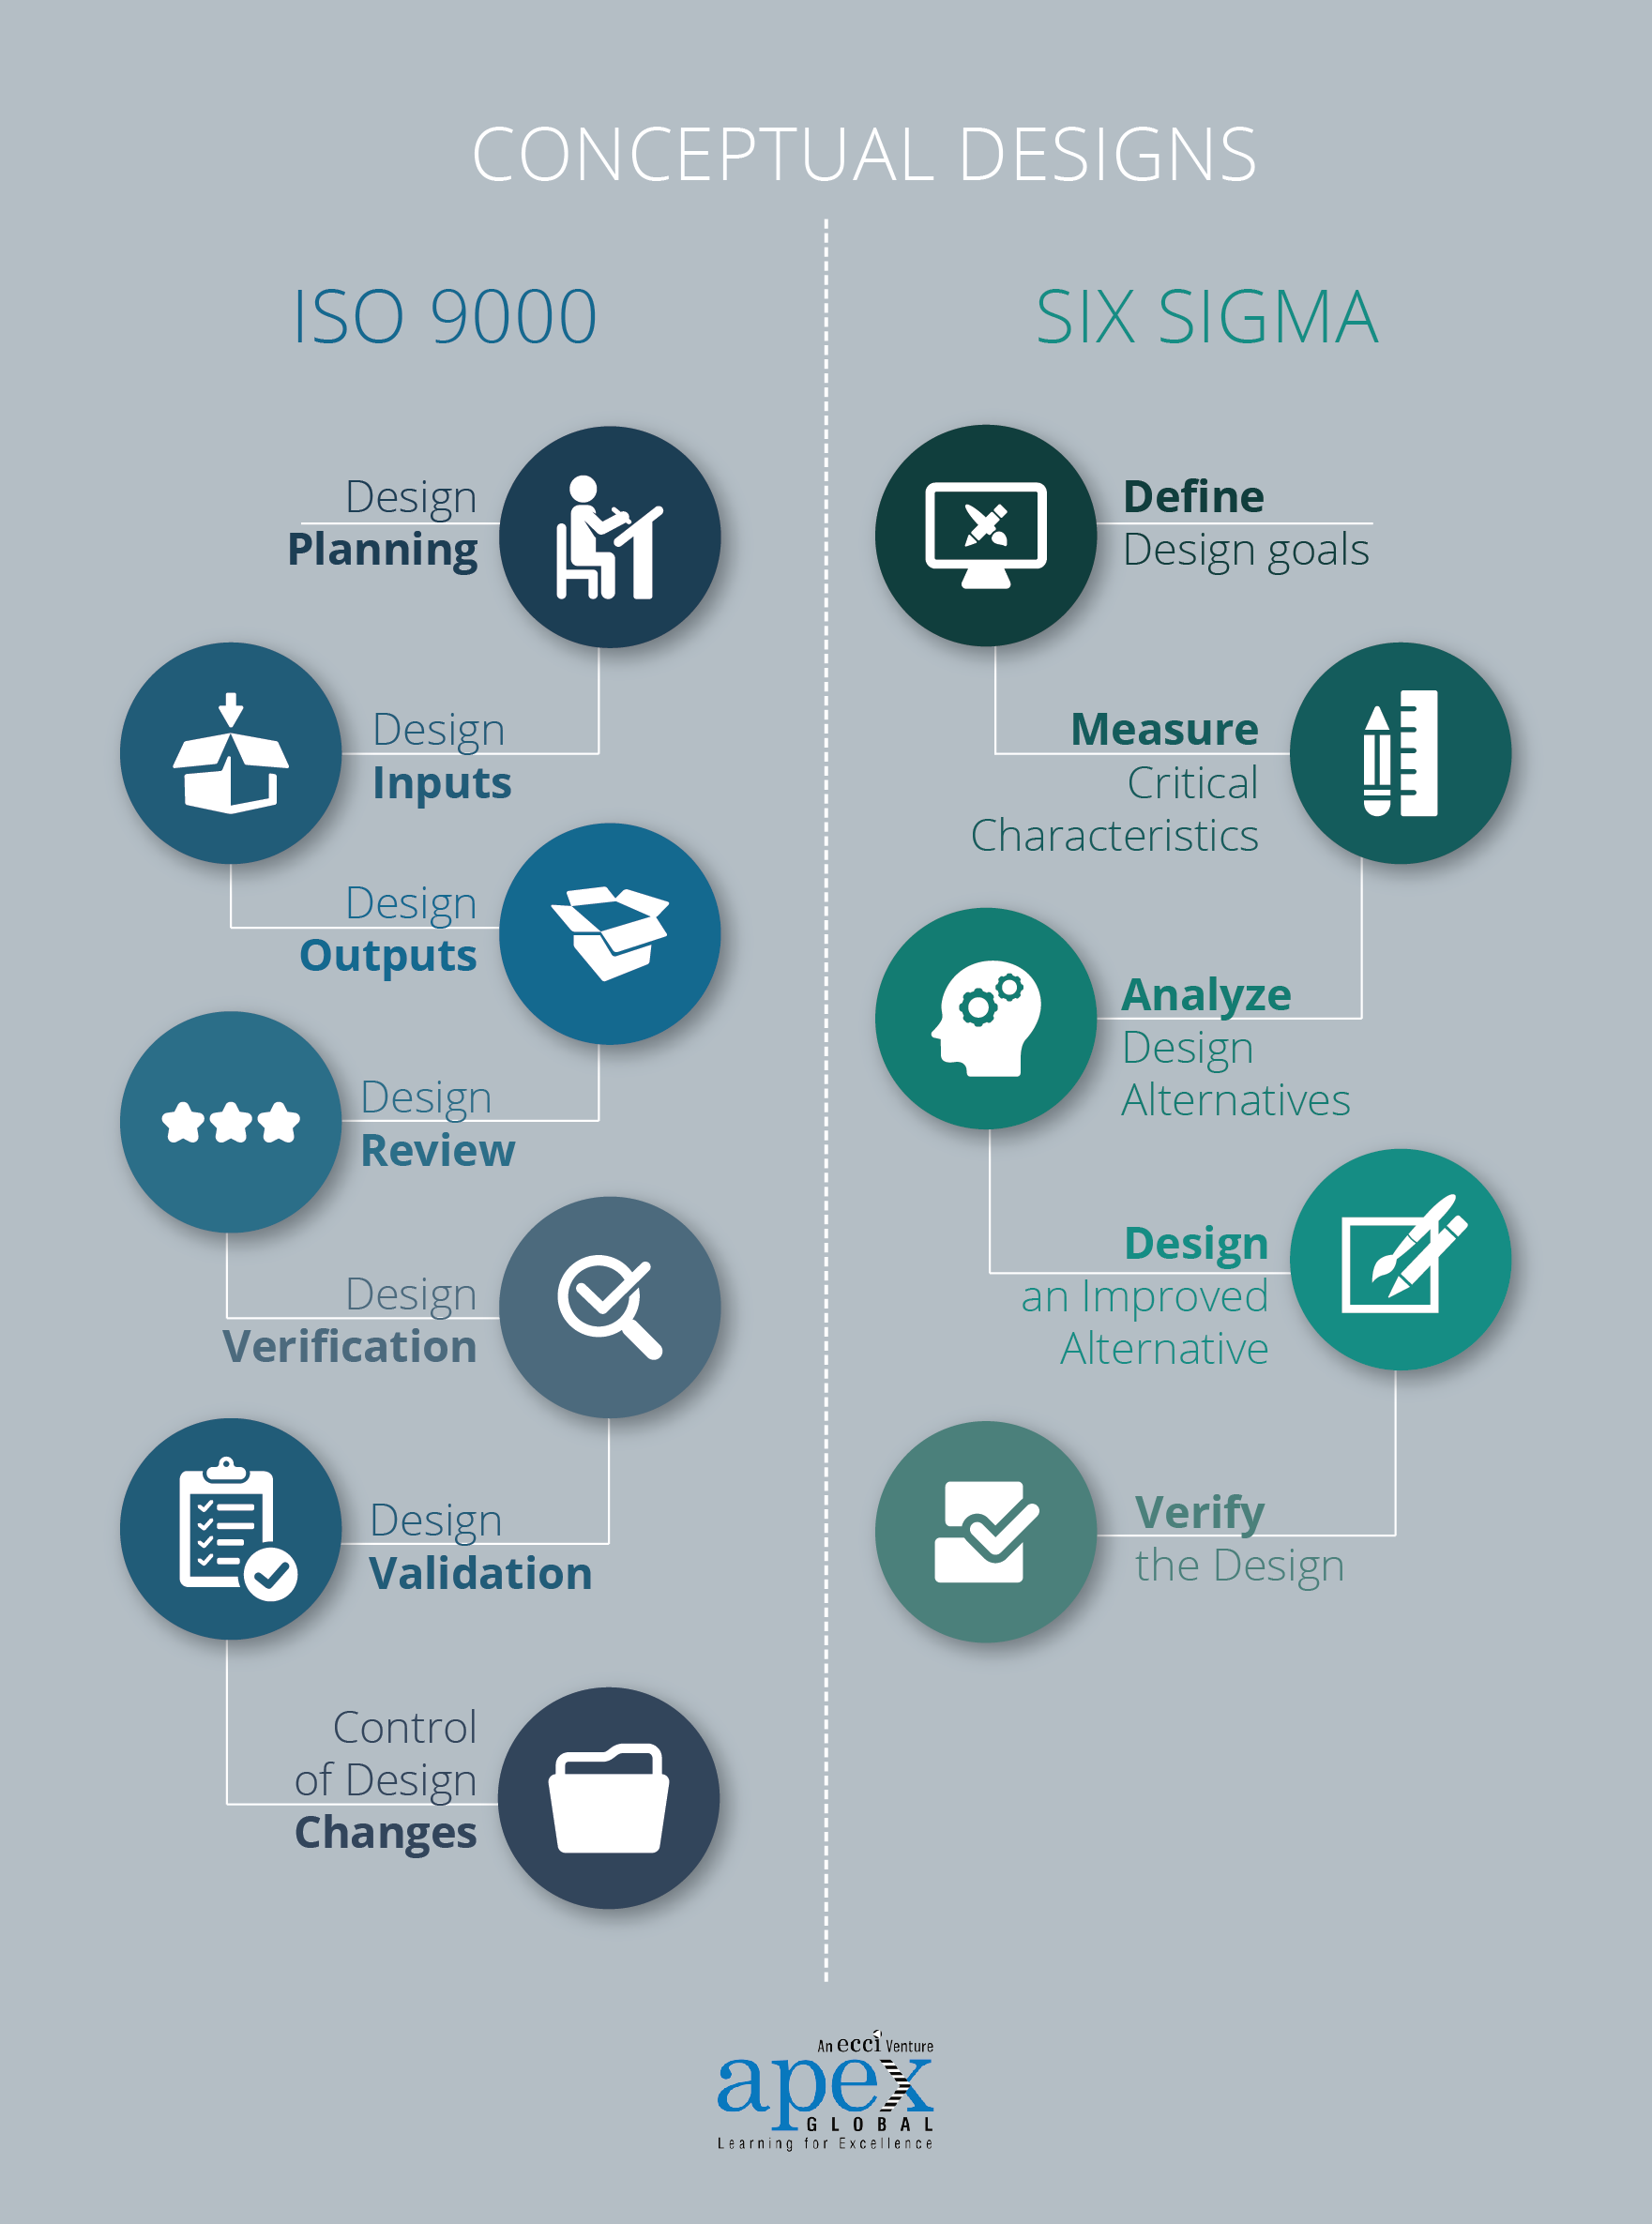 ISO 9001 compared to Six Sigma